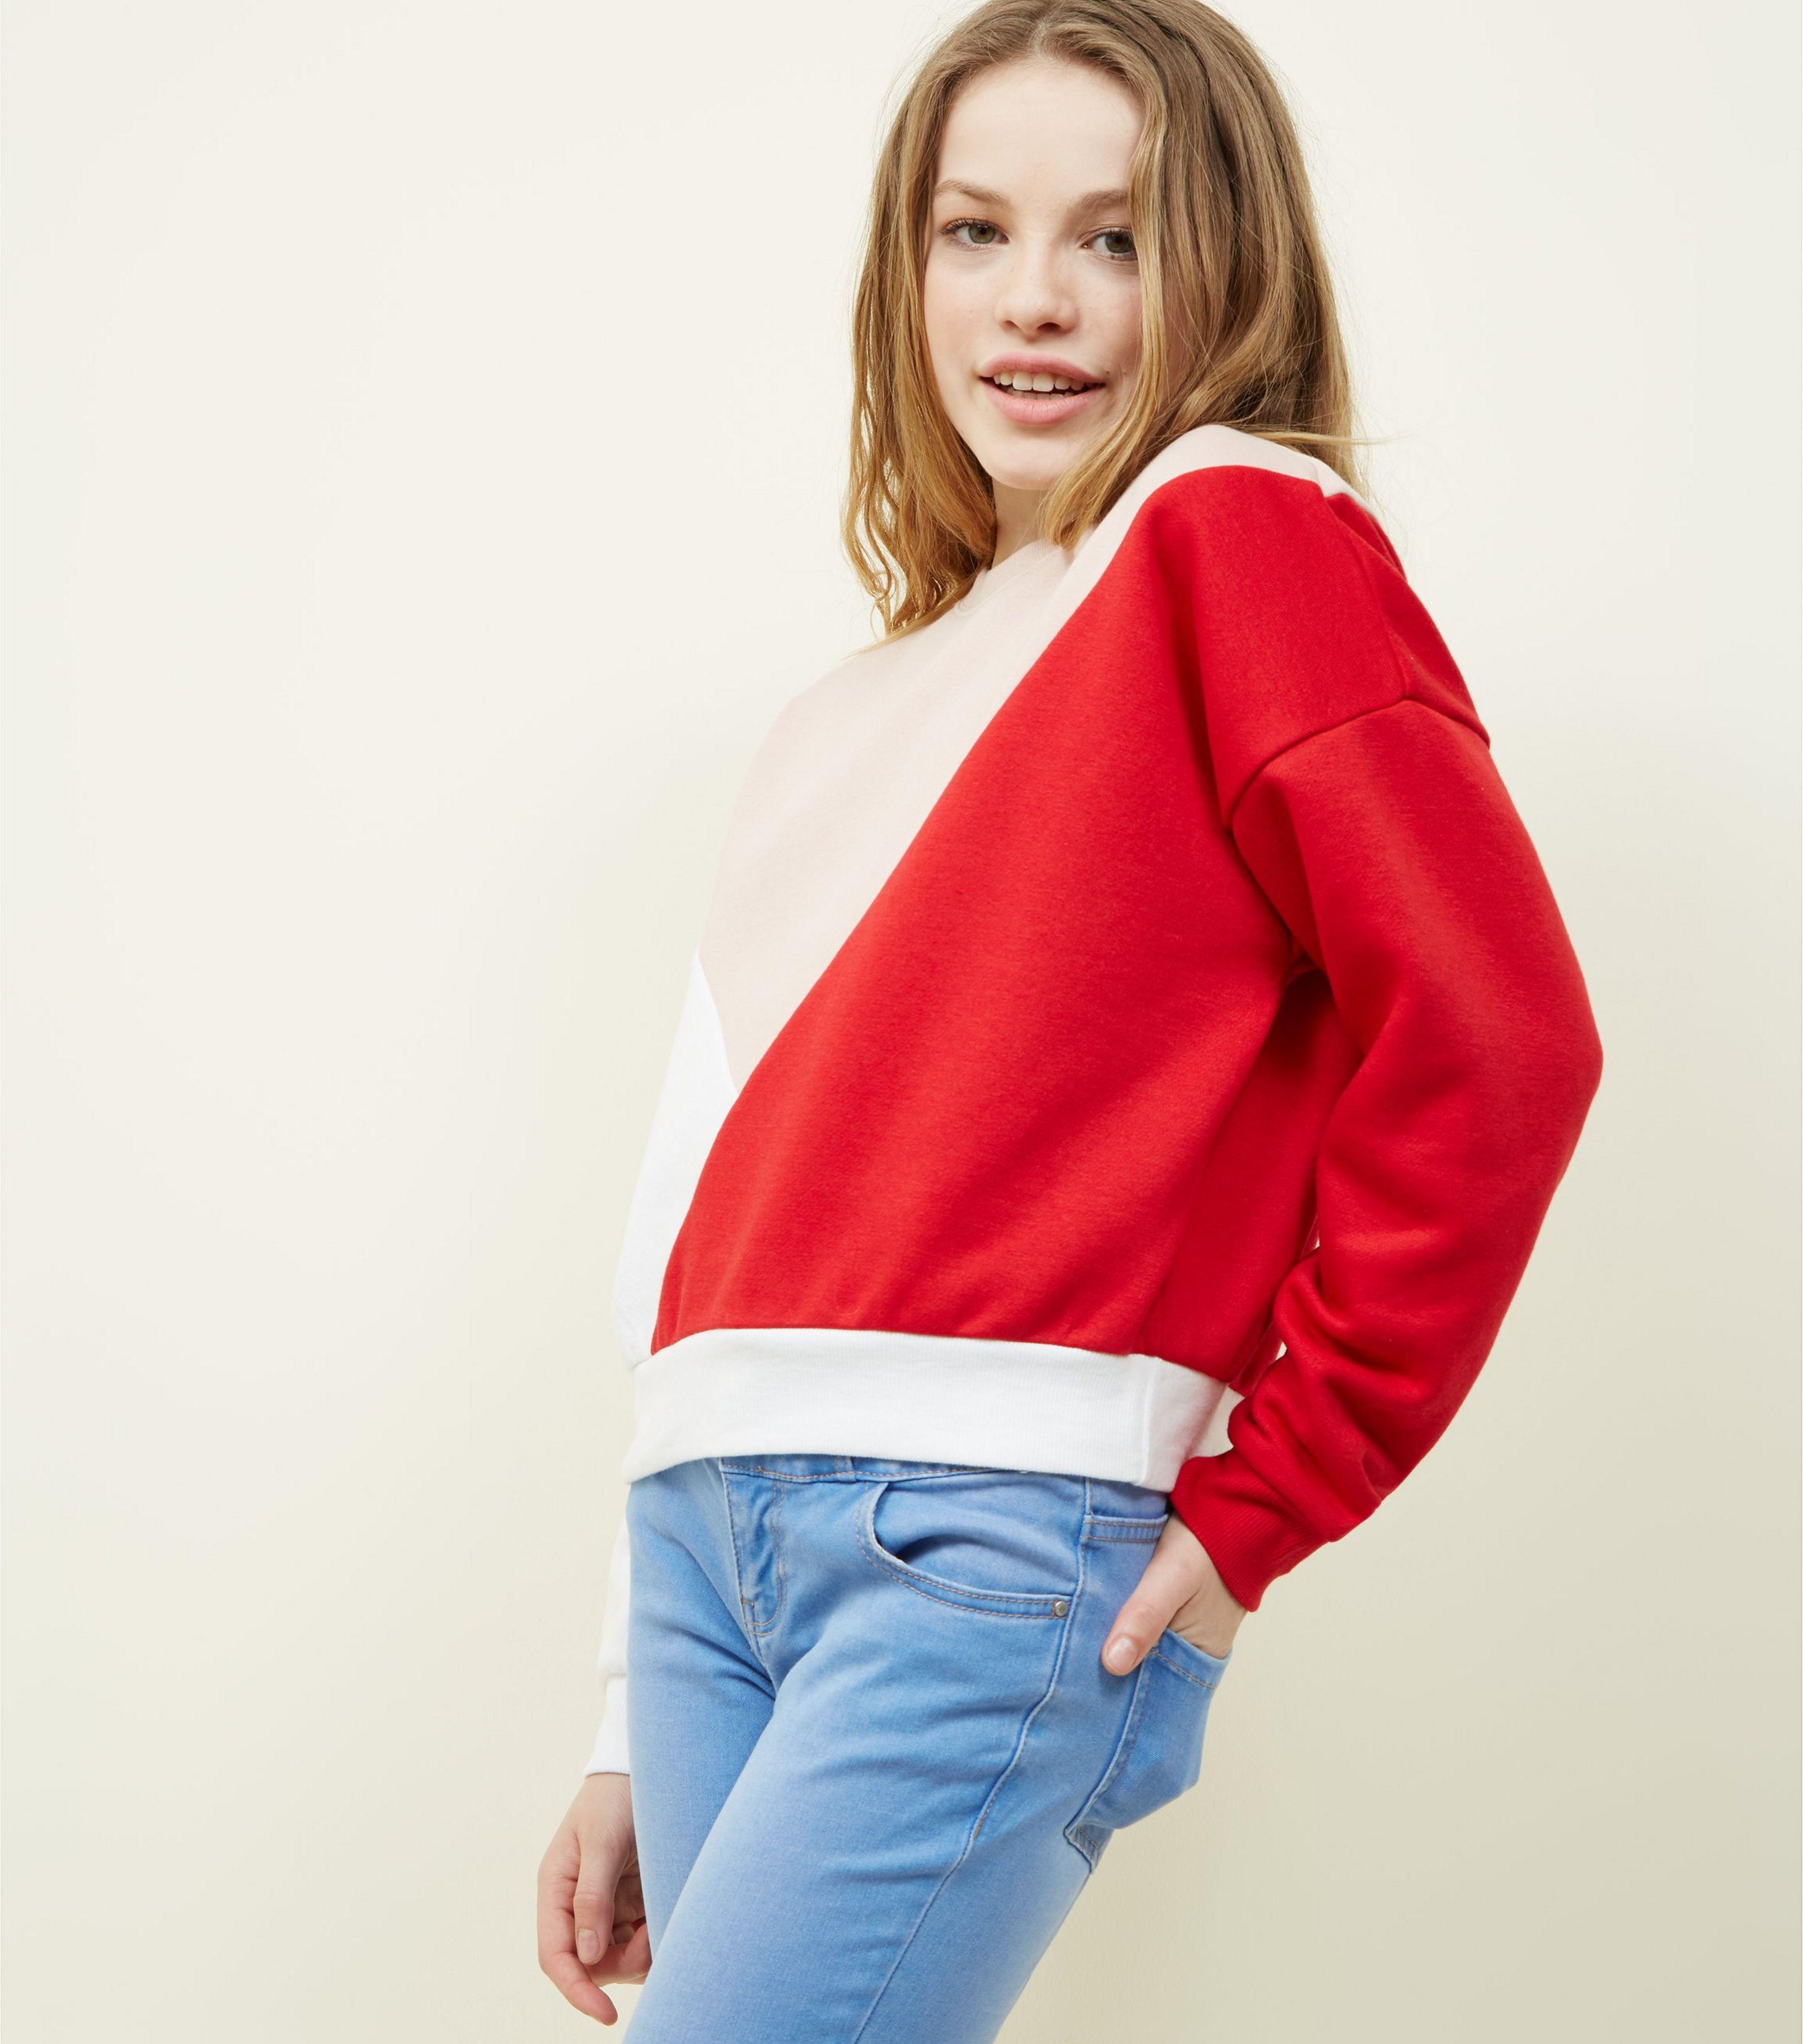 New Look Girls Red Colour Block Sweatshirt in Red - Lyst 1e941f1d49